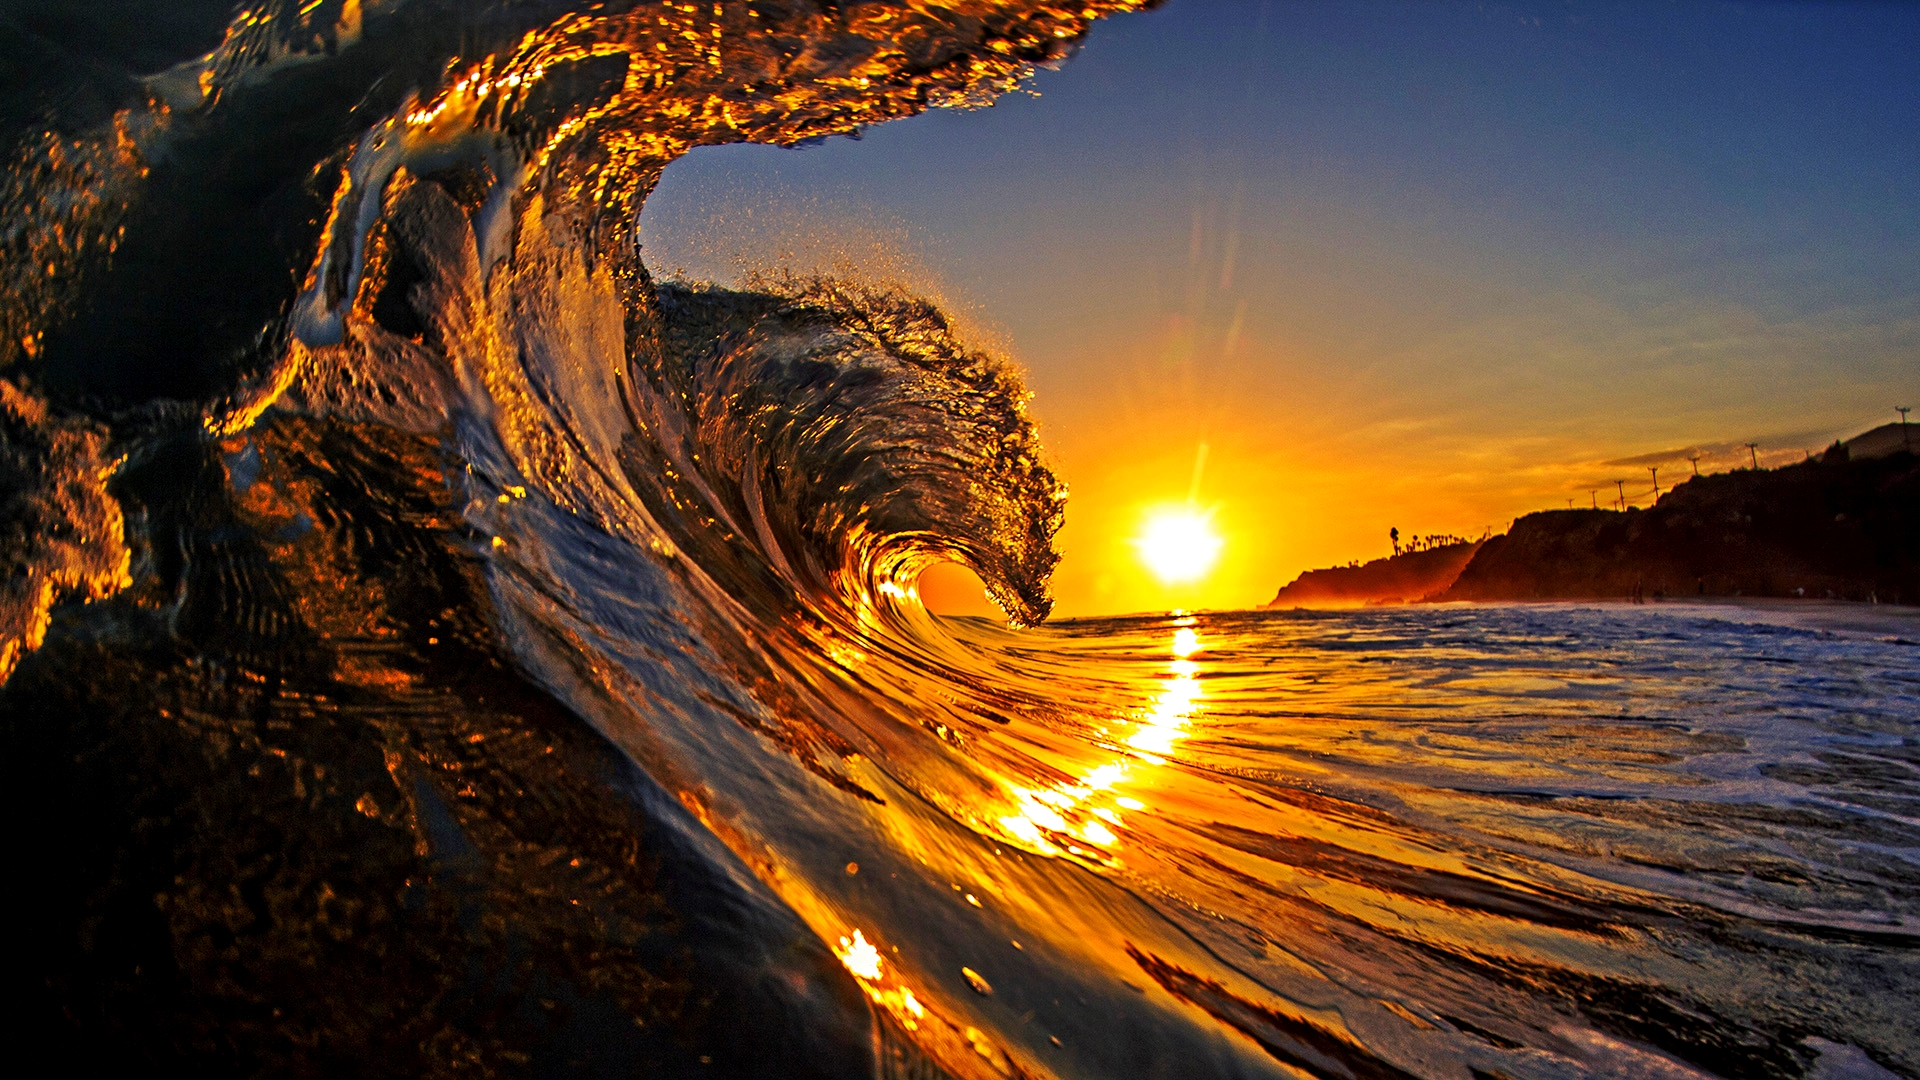 majestic wave at sunrise, california, usa | wallpaper.wiki